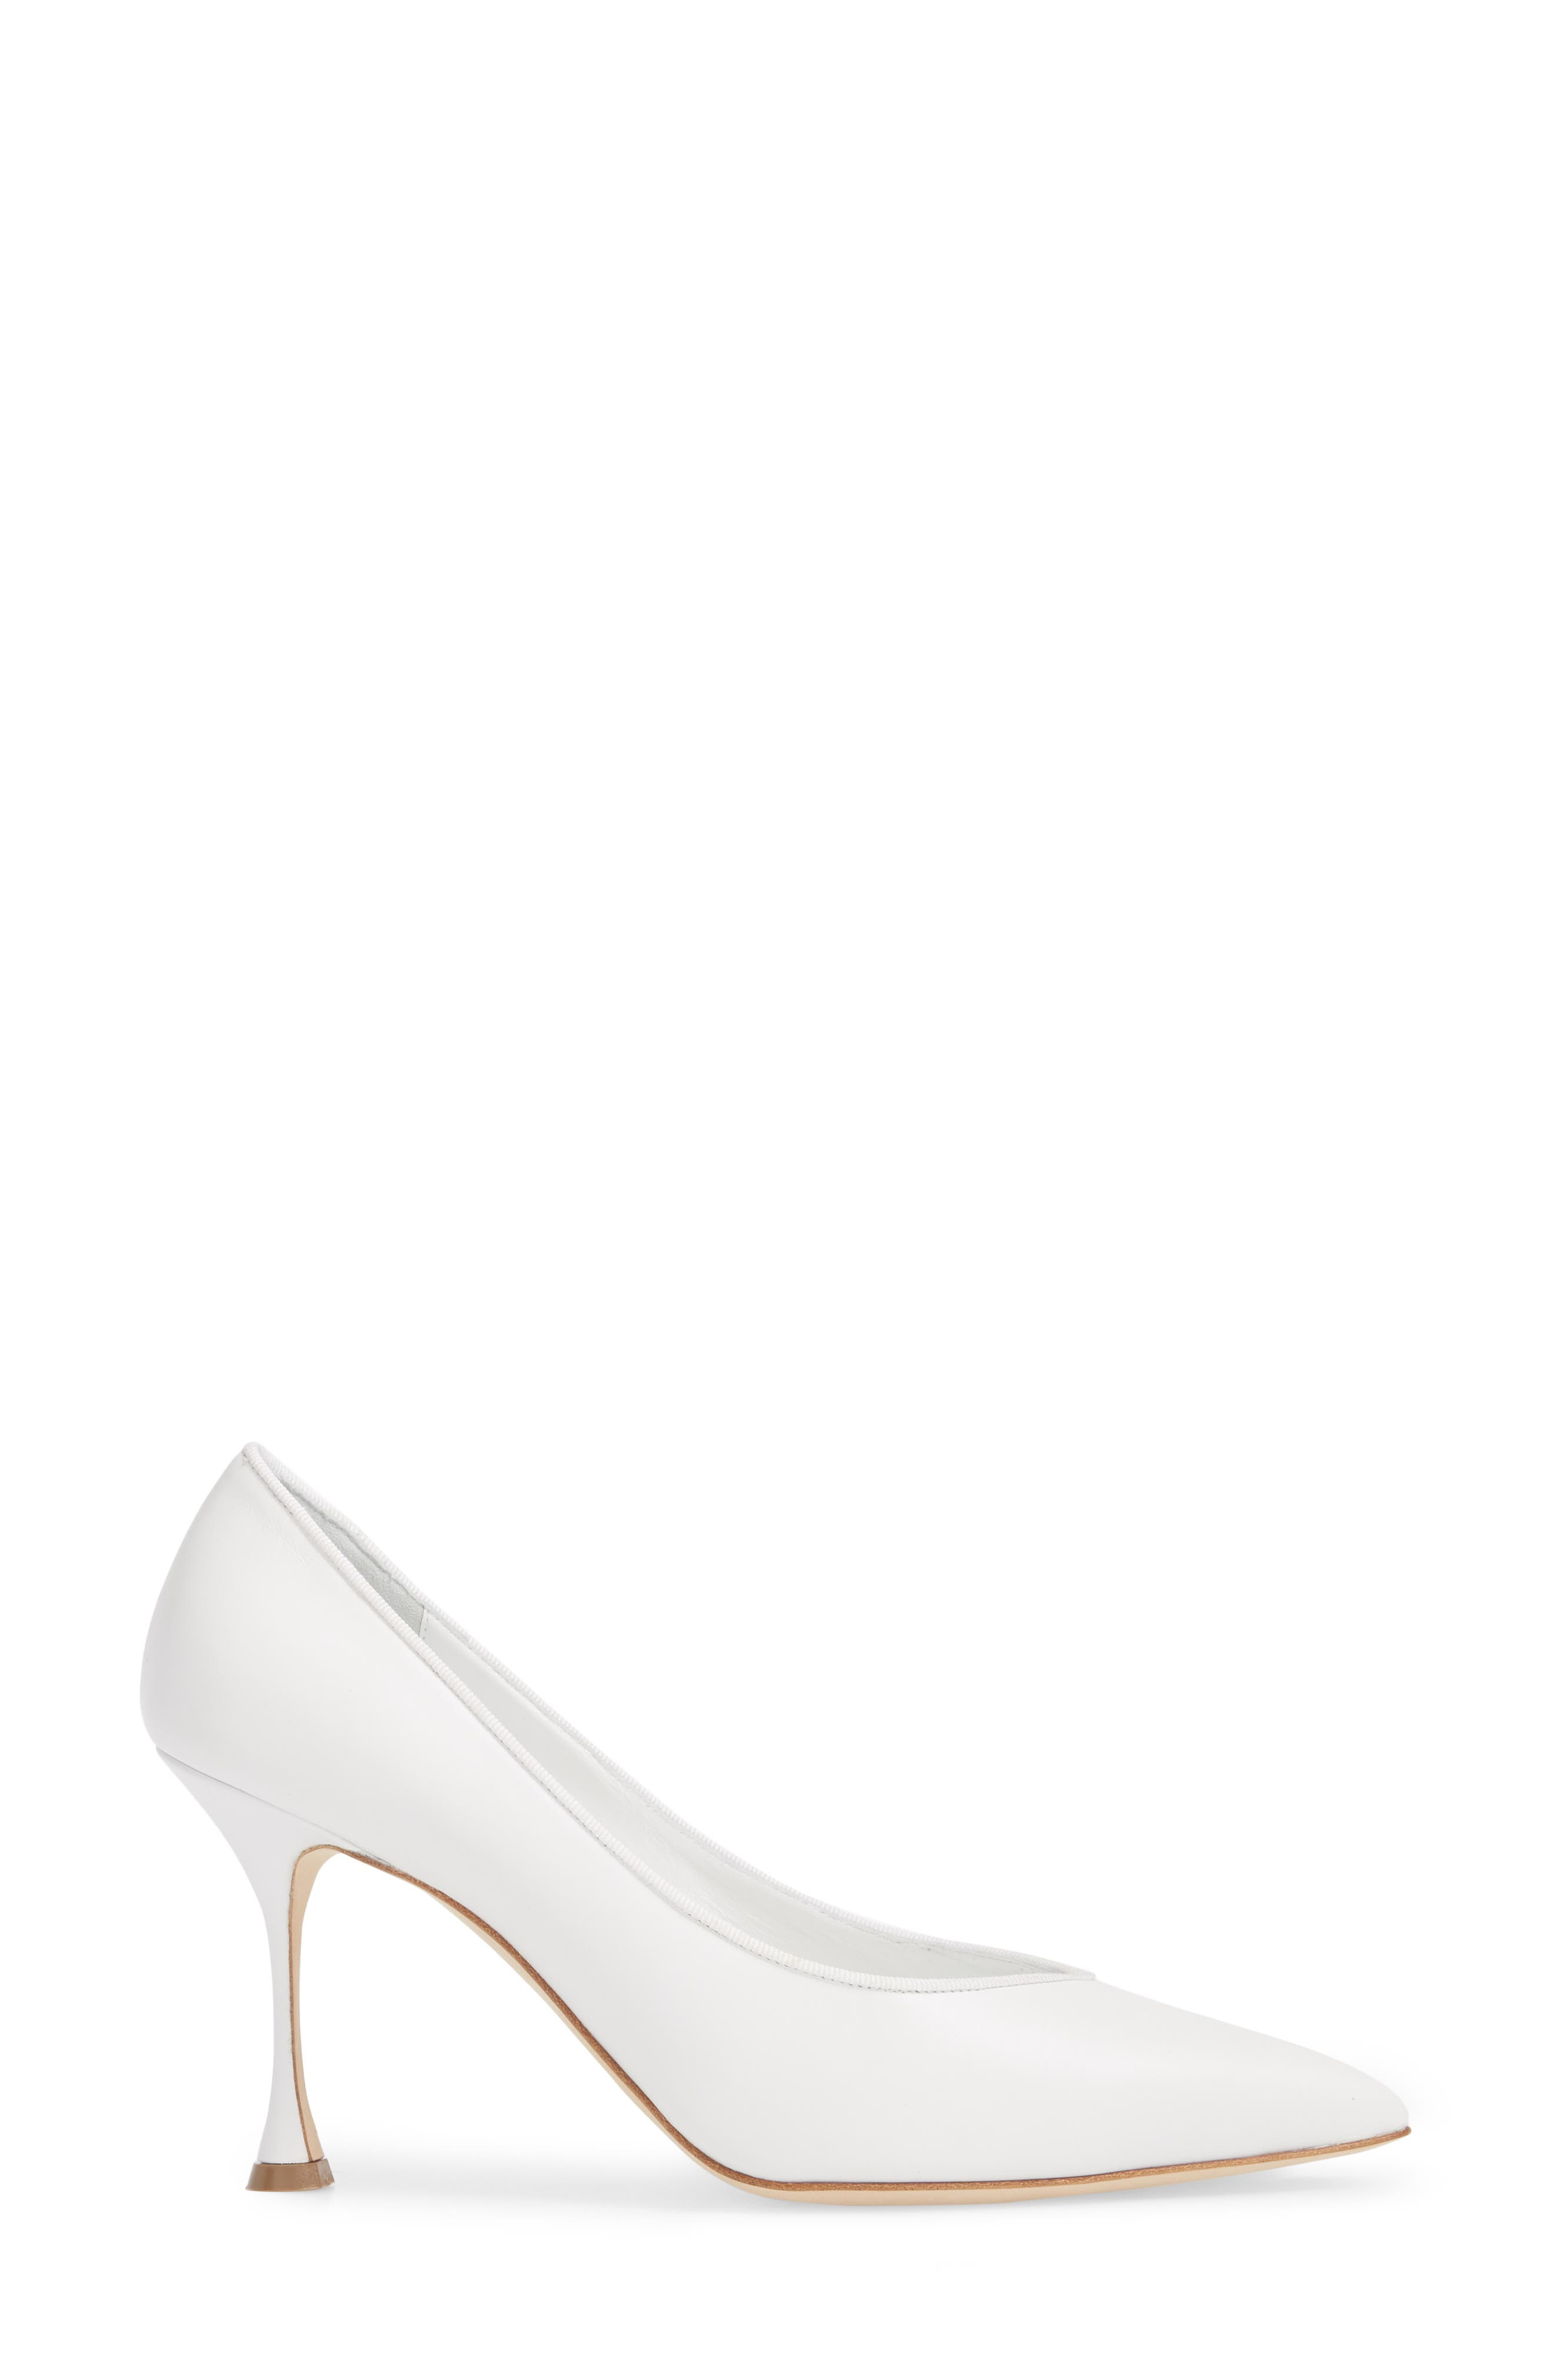 Urgenzapla Pointy Toe Pump,                             Alternate thumbnail 3, color,                             WHITE LEATHER